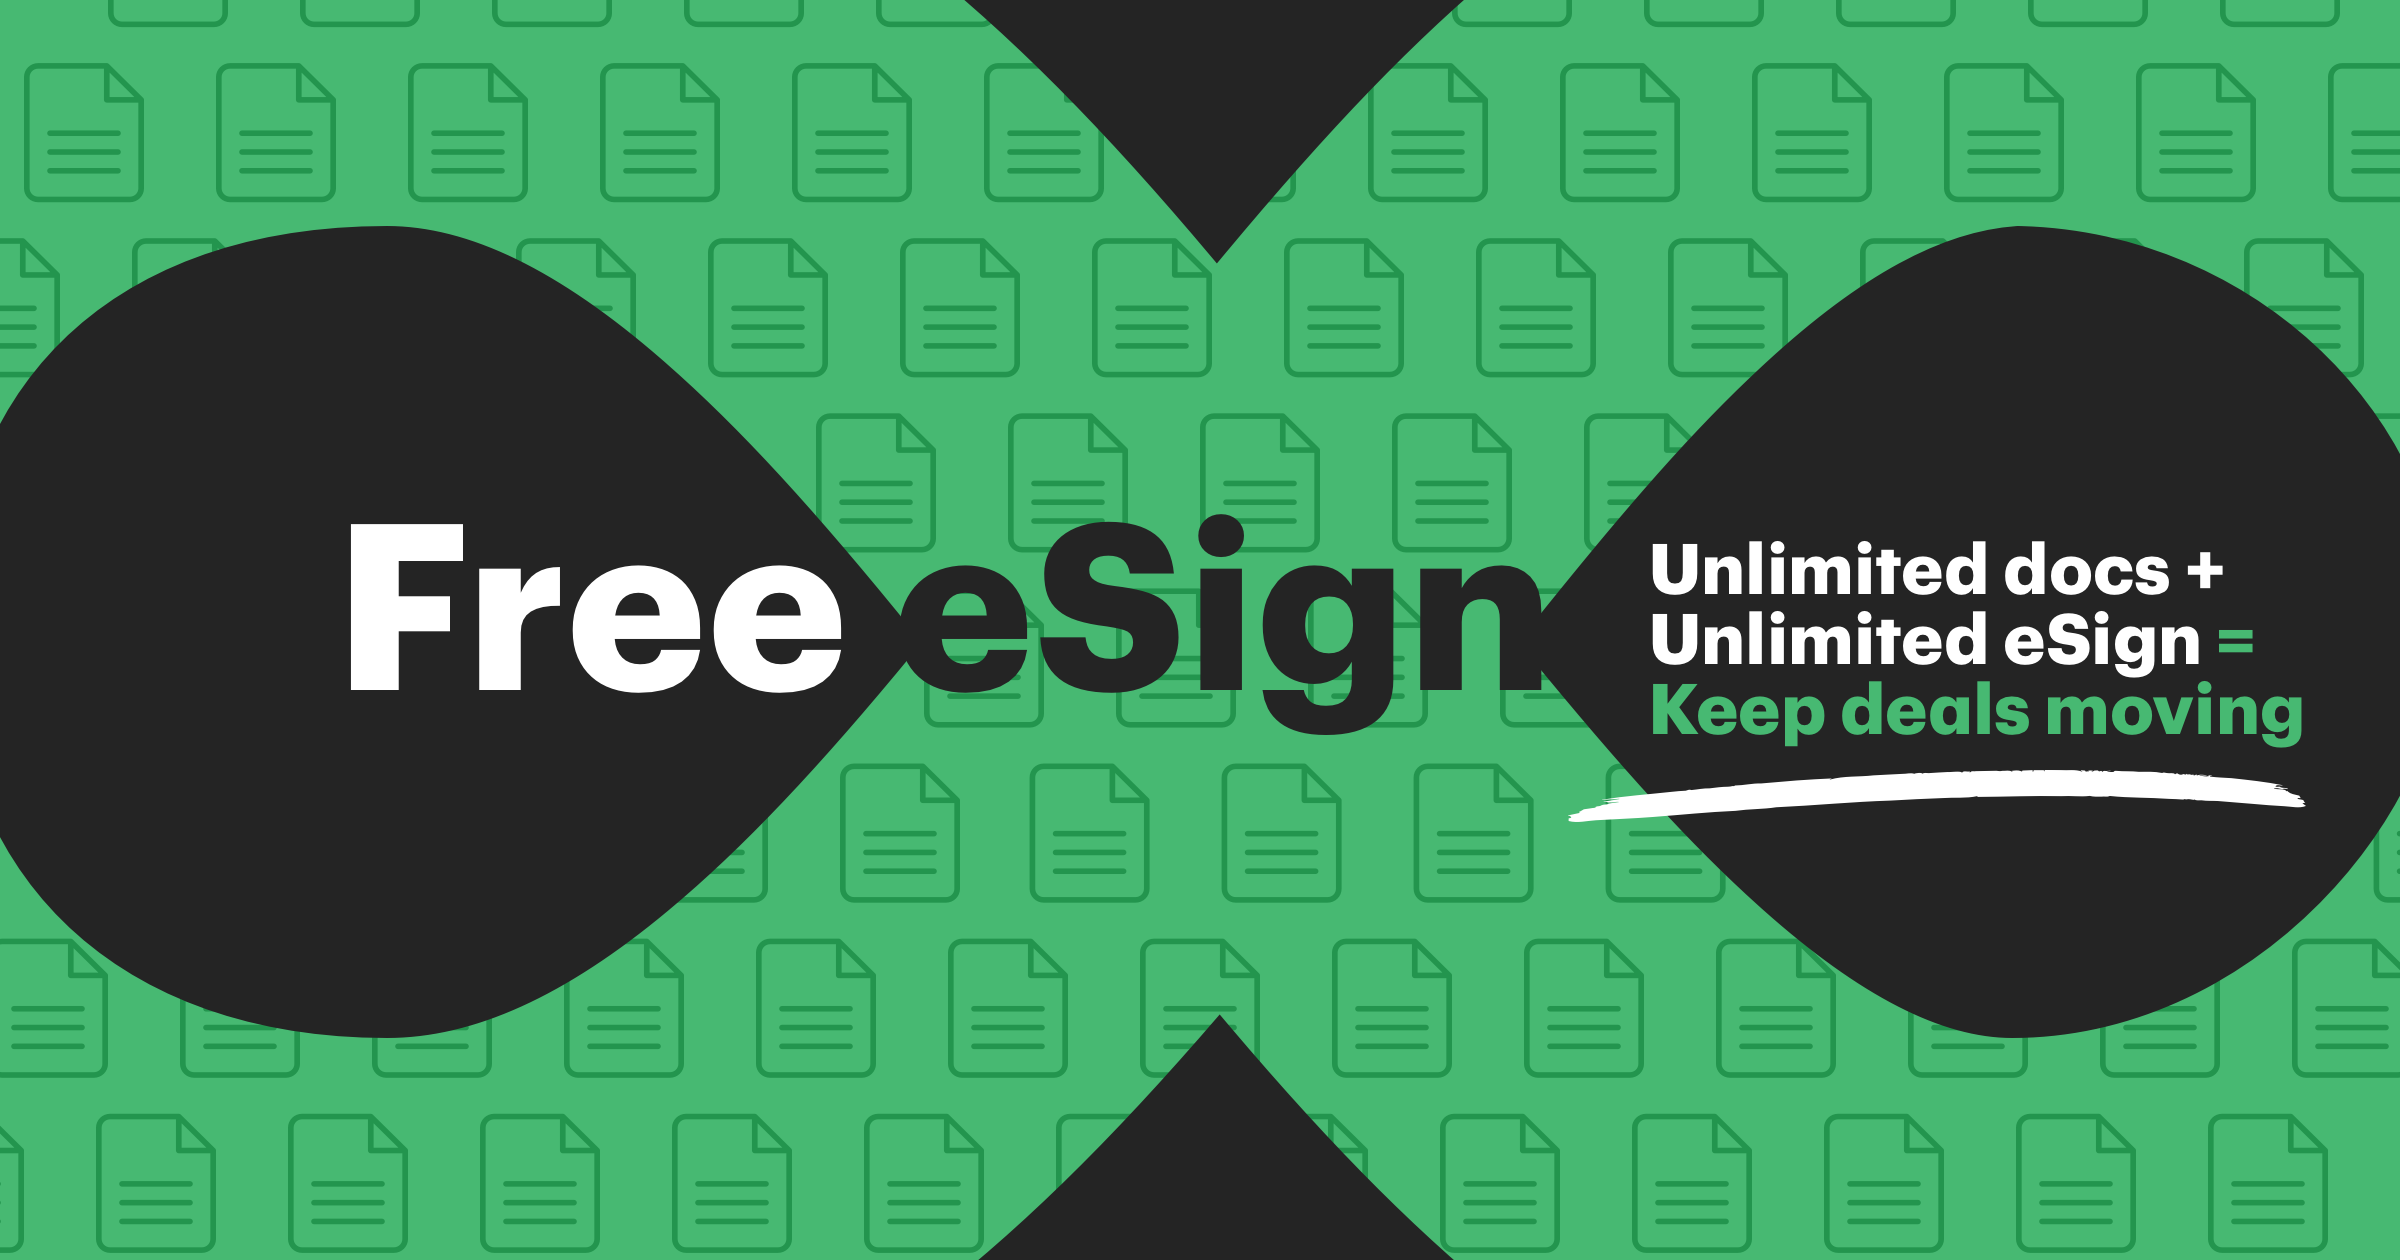 Prioritizing People Over Profit: The New Free eSign Plan